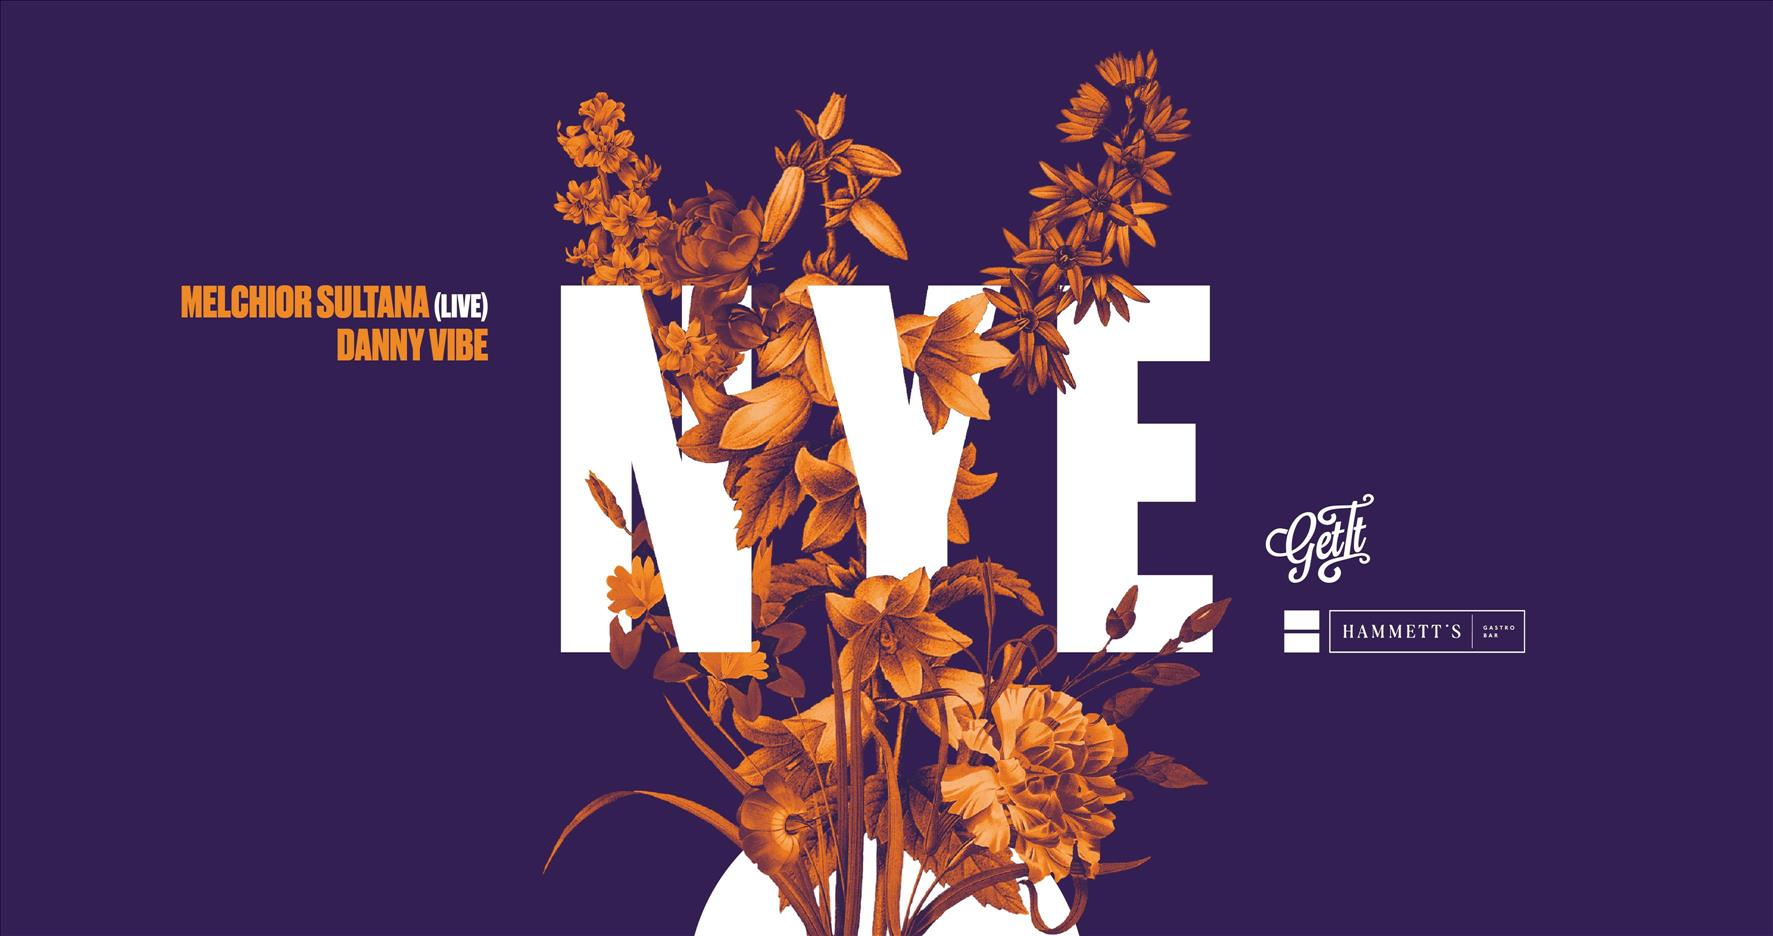 New Year's Eve at Hammett's Hosted By Get It flyer